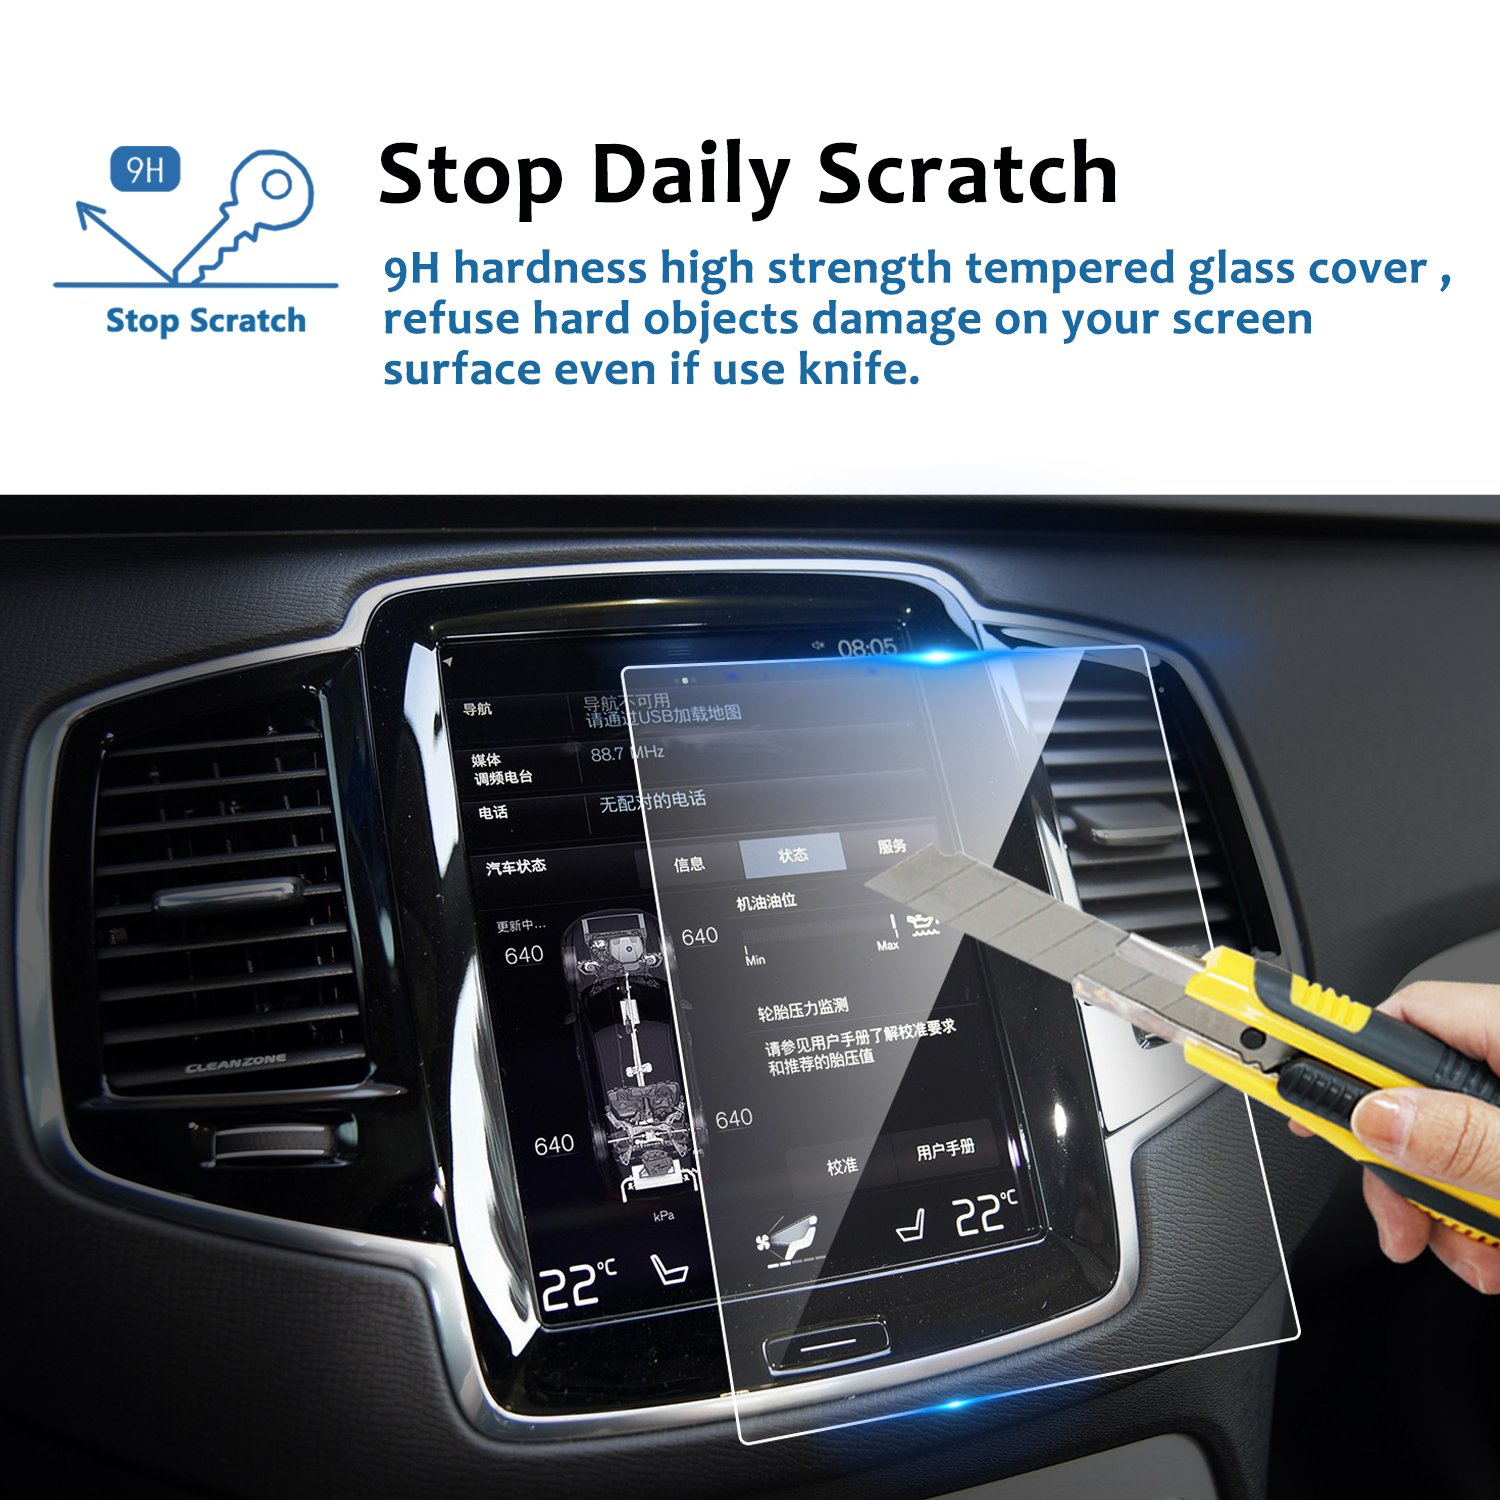 LFOTPP Volvo V90 XC90 S90 Sensus 8.7 Inch Car Navigation Screen Protector,[9H] Tempered Glass Infotainment Screen Center Touch Screen Protector Anti Scratch High Clarity by LFOTPP (Image #2)